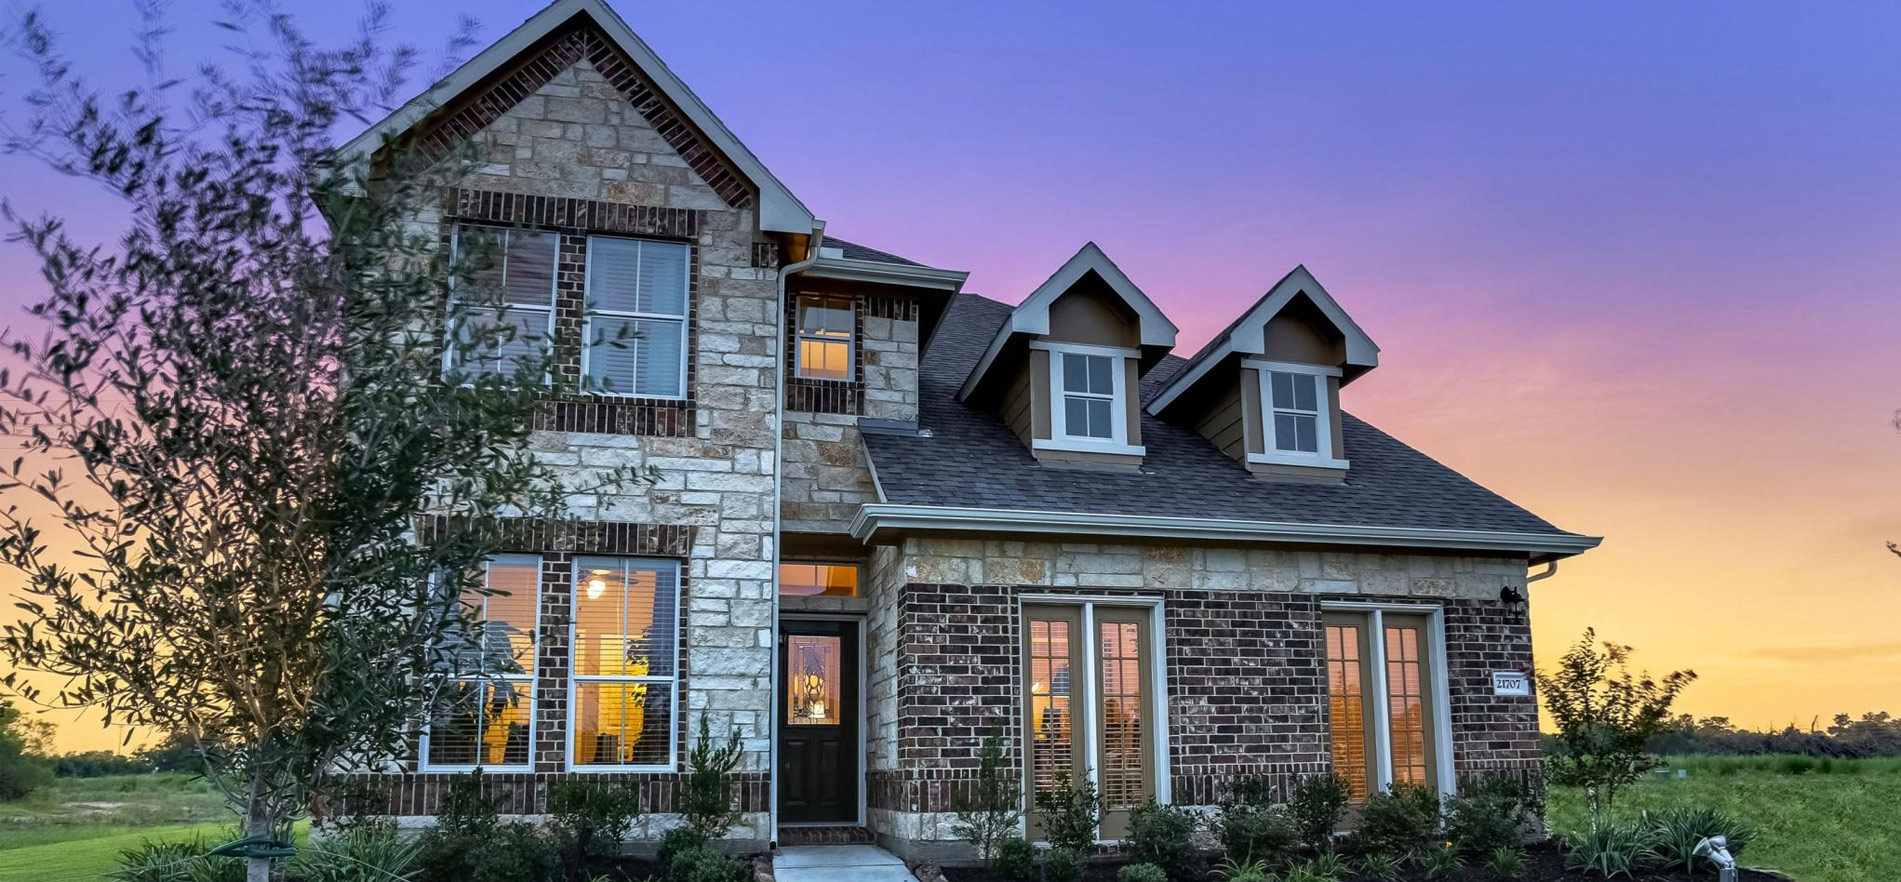 Better Homes And Gardens Real Estate Gary Greene Realtors Autos Post